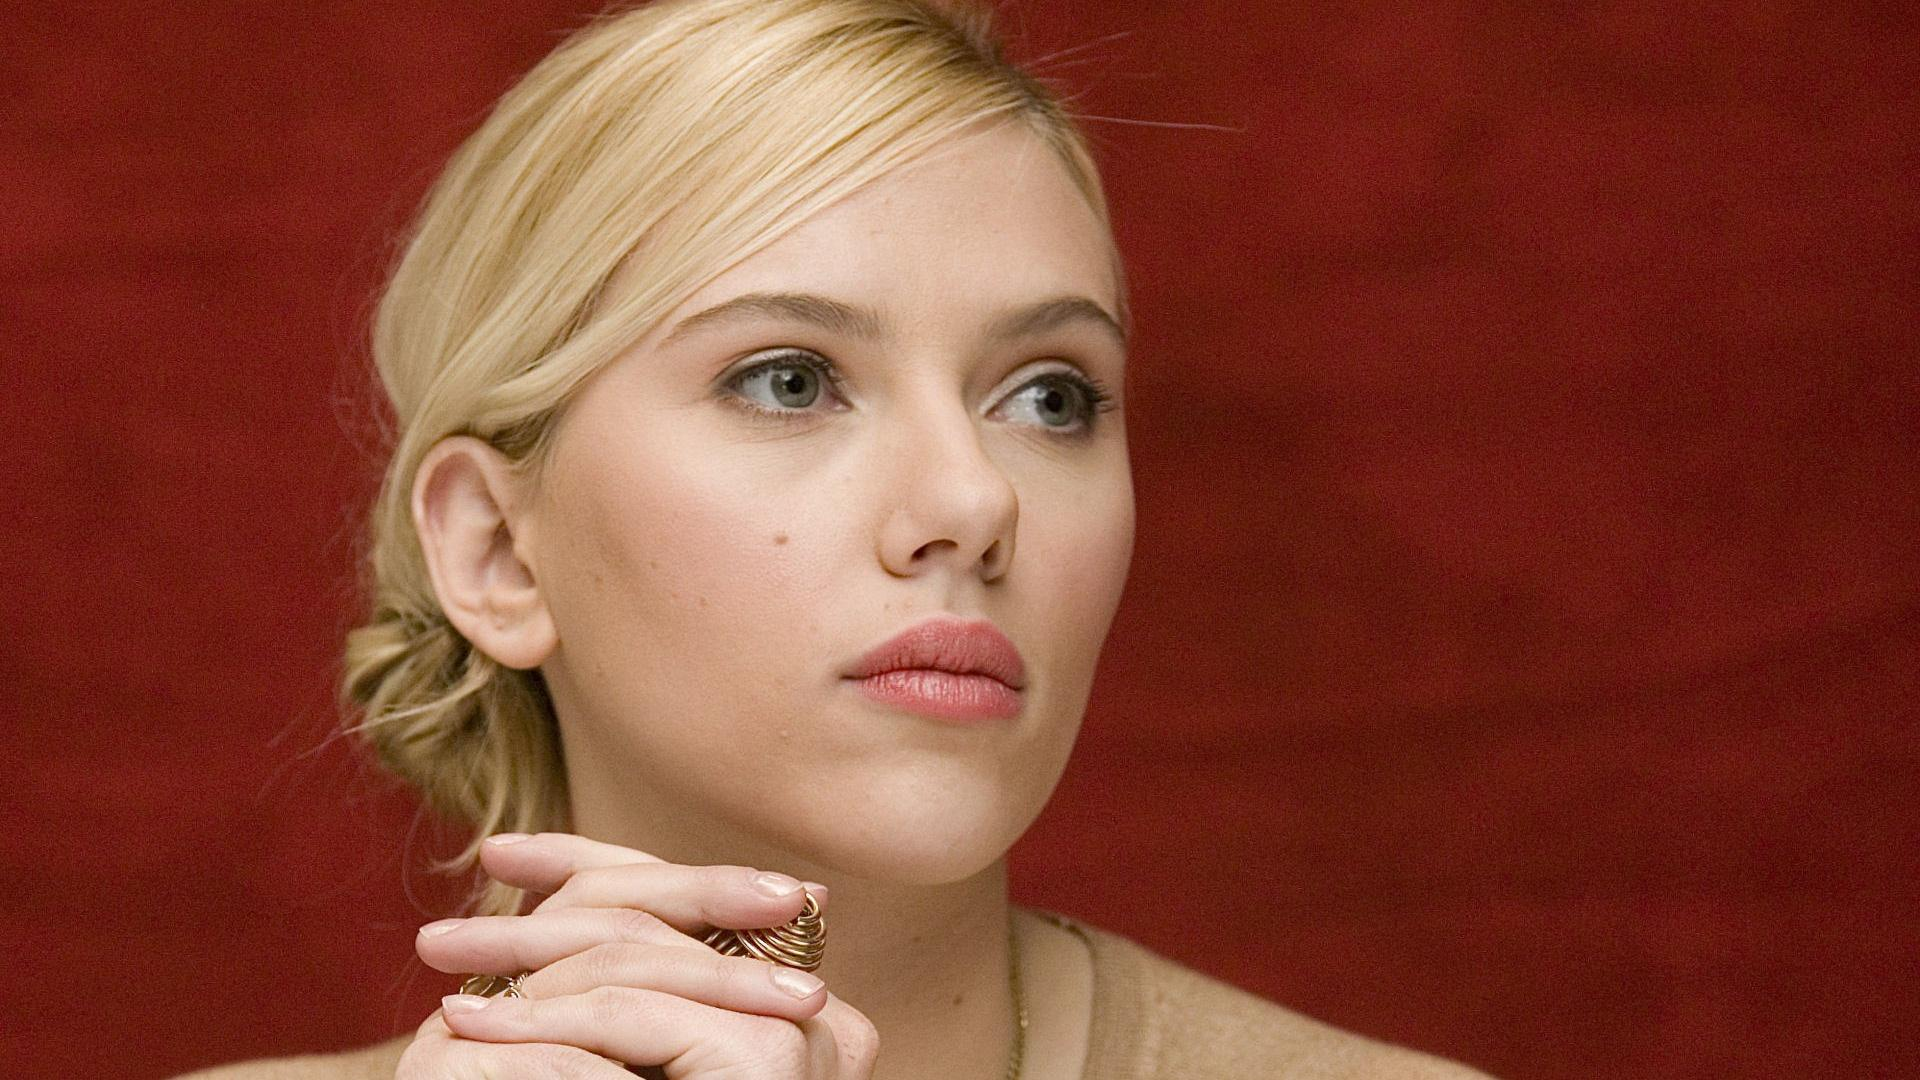 Scarlett Johansson Blonde Girl Actress